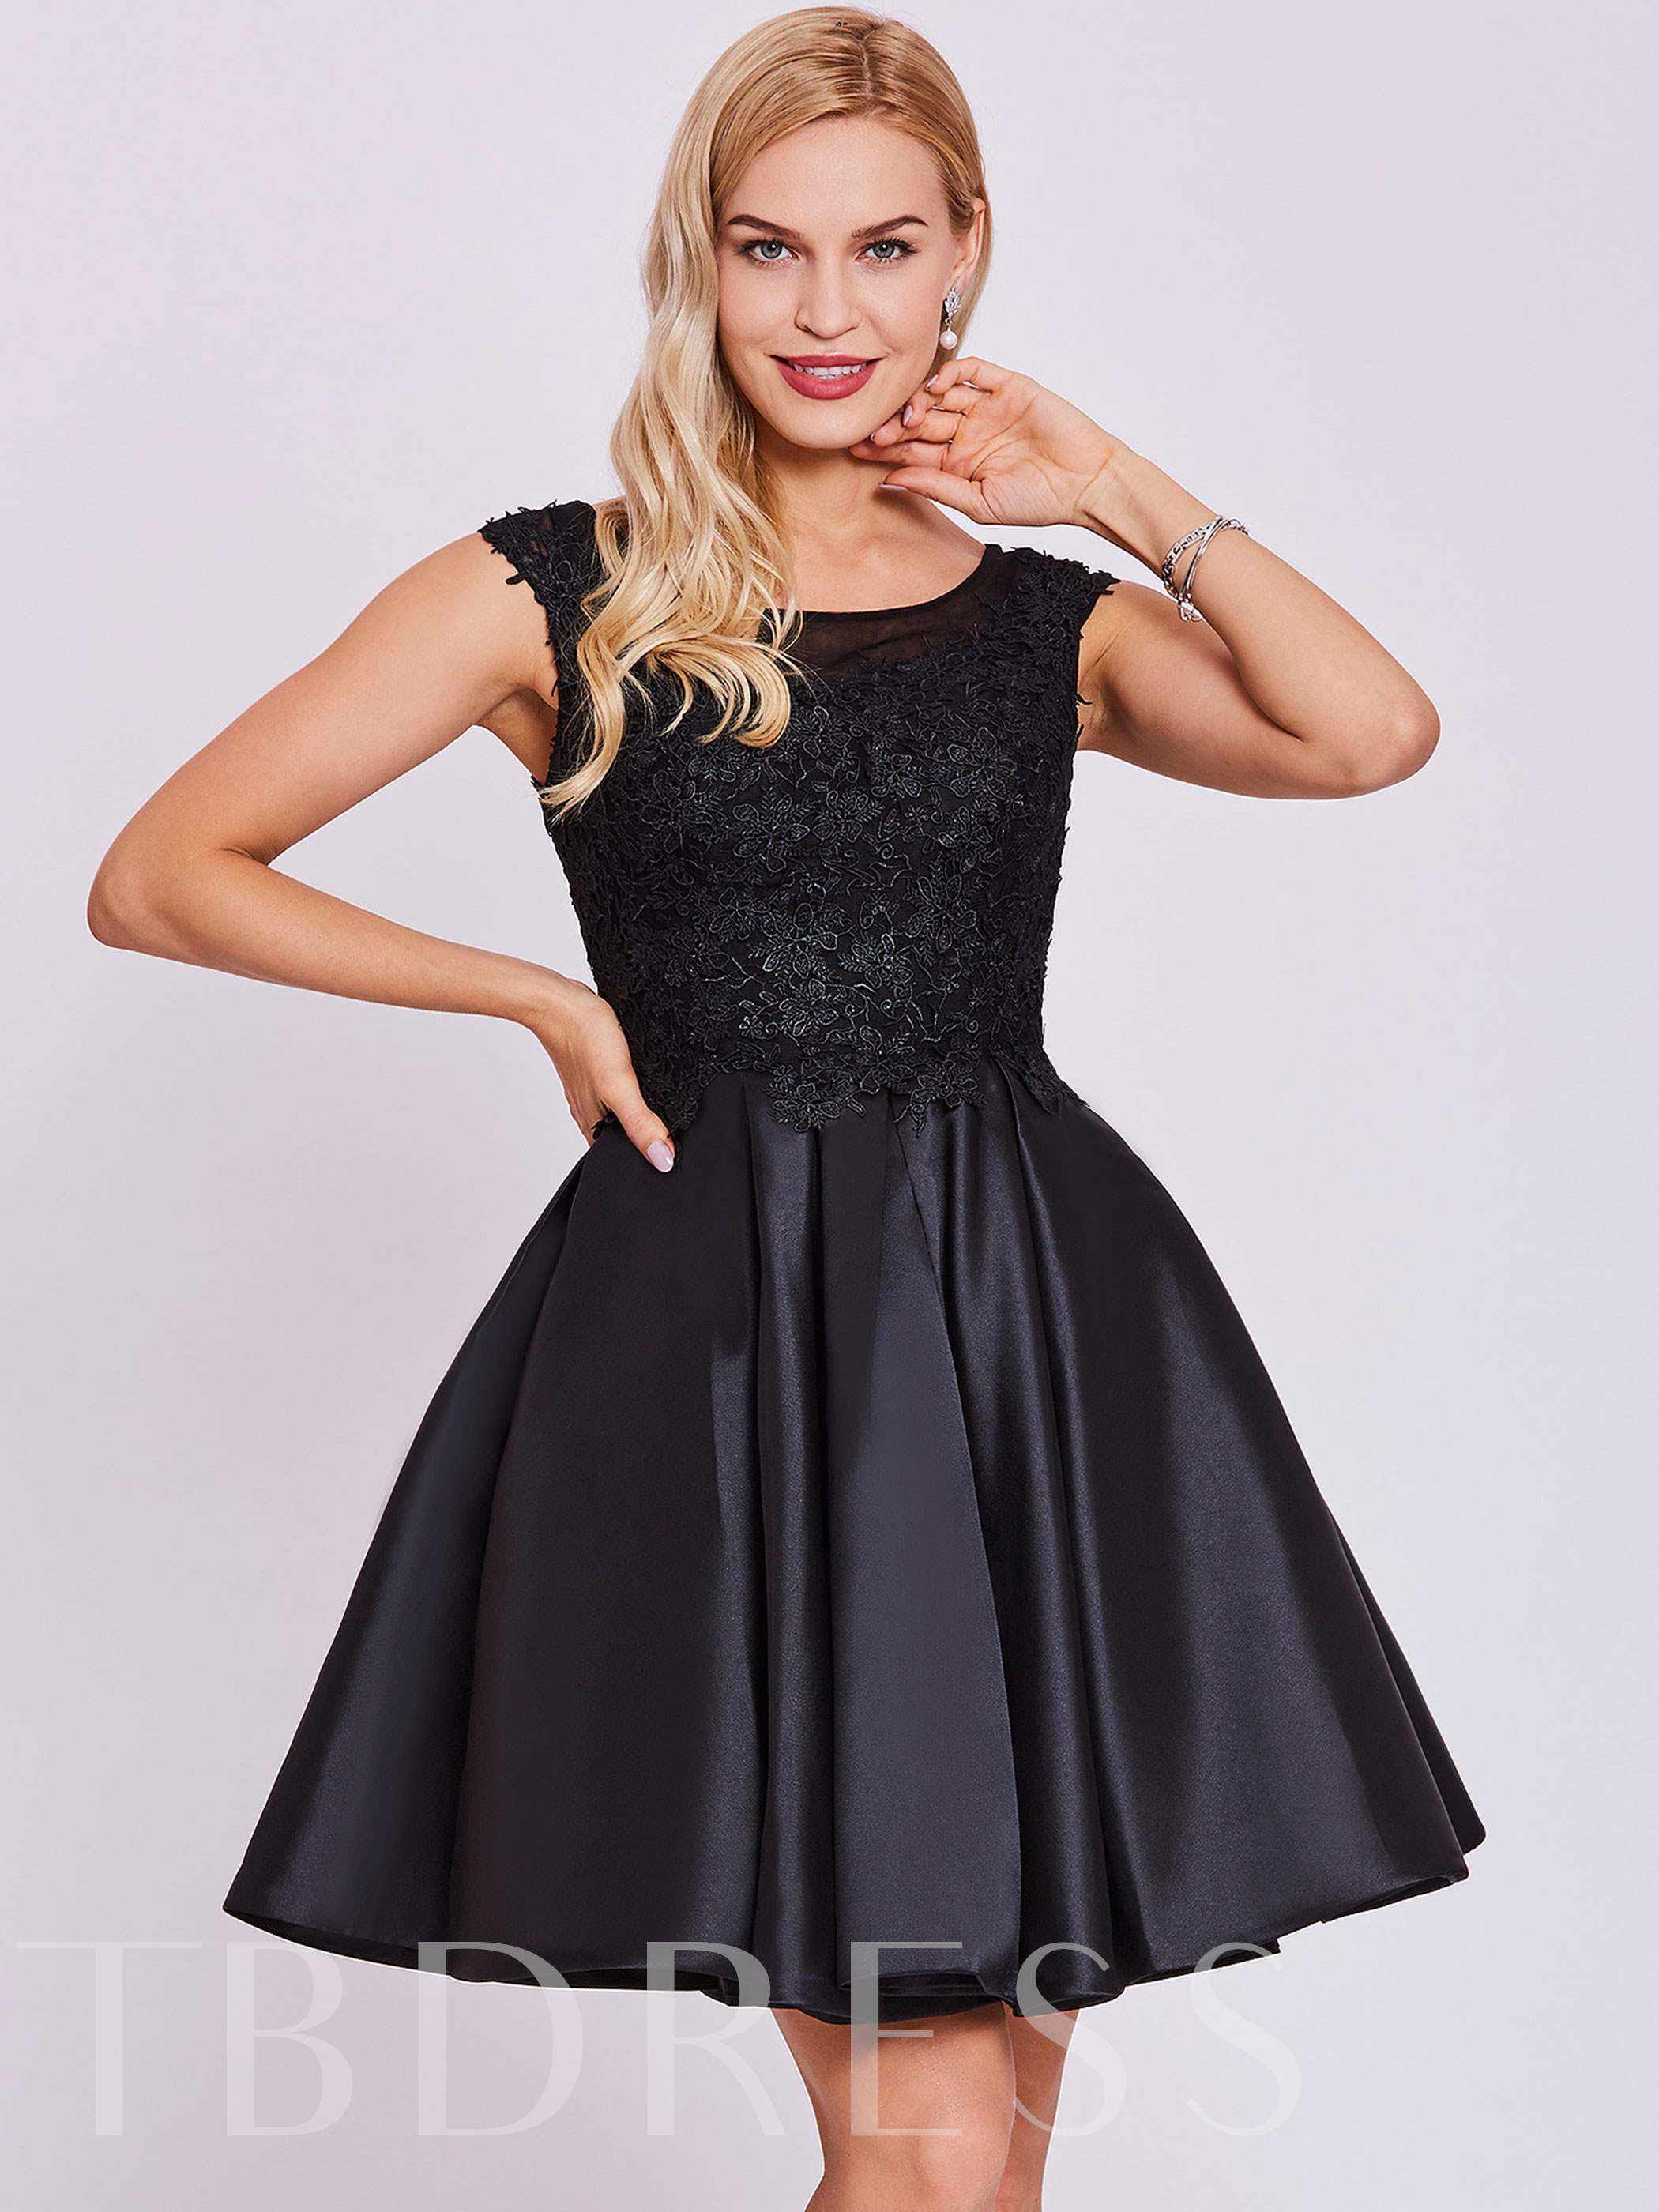 Buy Scoop Neck Lace Appliques A Line Cap Sleeves Homecoming Dress, Tanpell, Spring,Summer,Fall, 12907159 for $56.22 in TBDress store